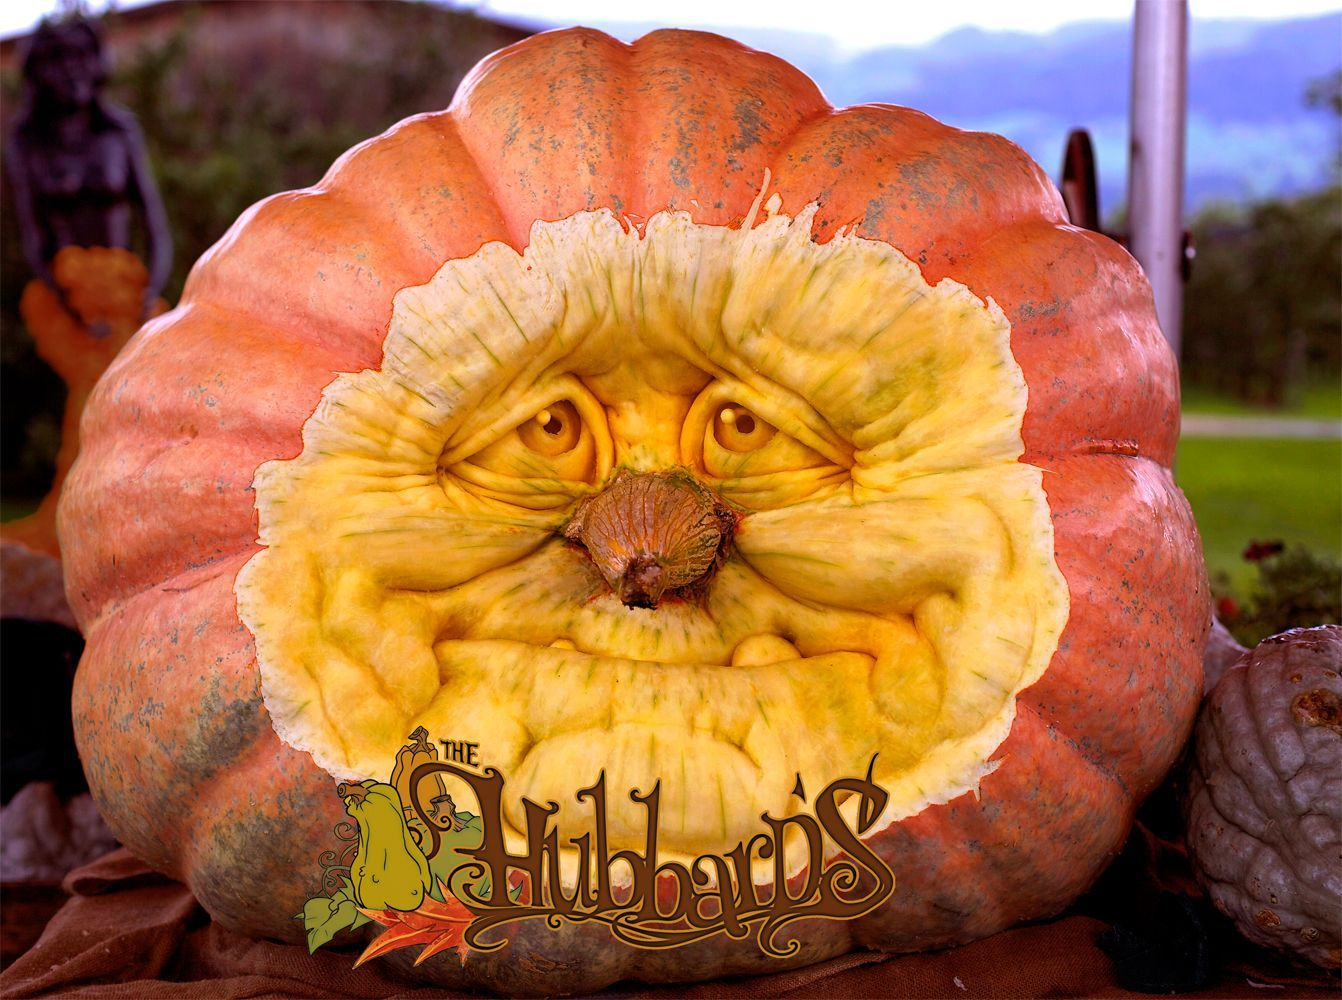 Pumpkin HeadsRay Villafane Art Pinterest Pumpkin Carving - Mind blowing pumpkin carvings by ray villafane 2